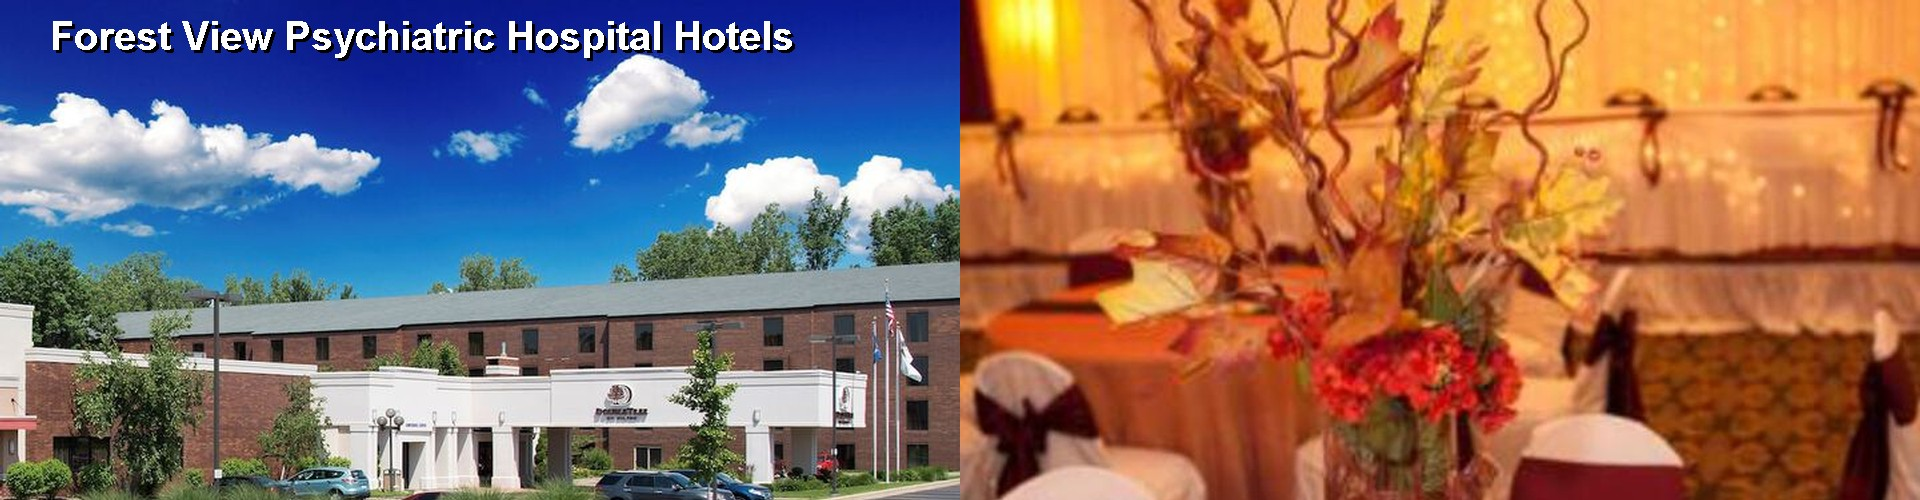 5 Best Hotels near Forest View Psychiatric Hospital